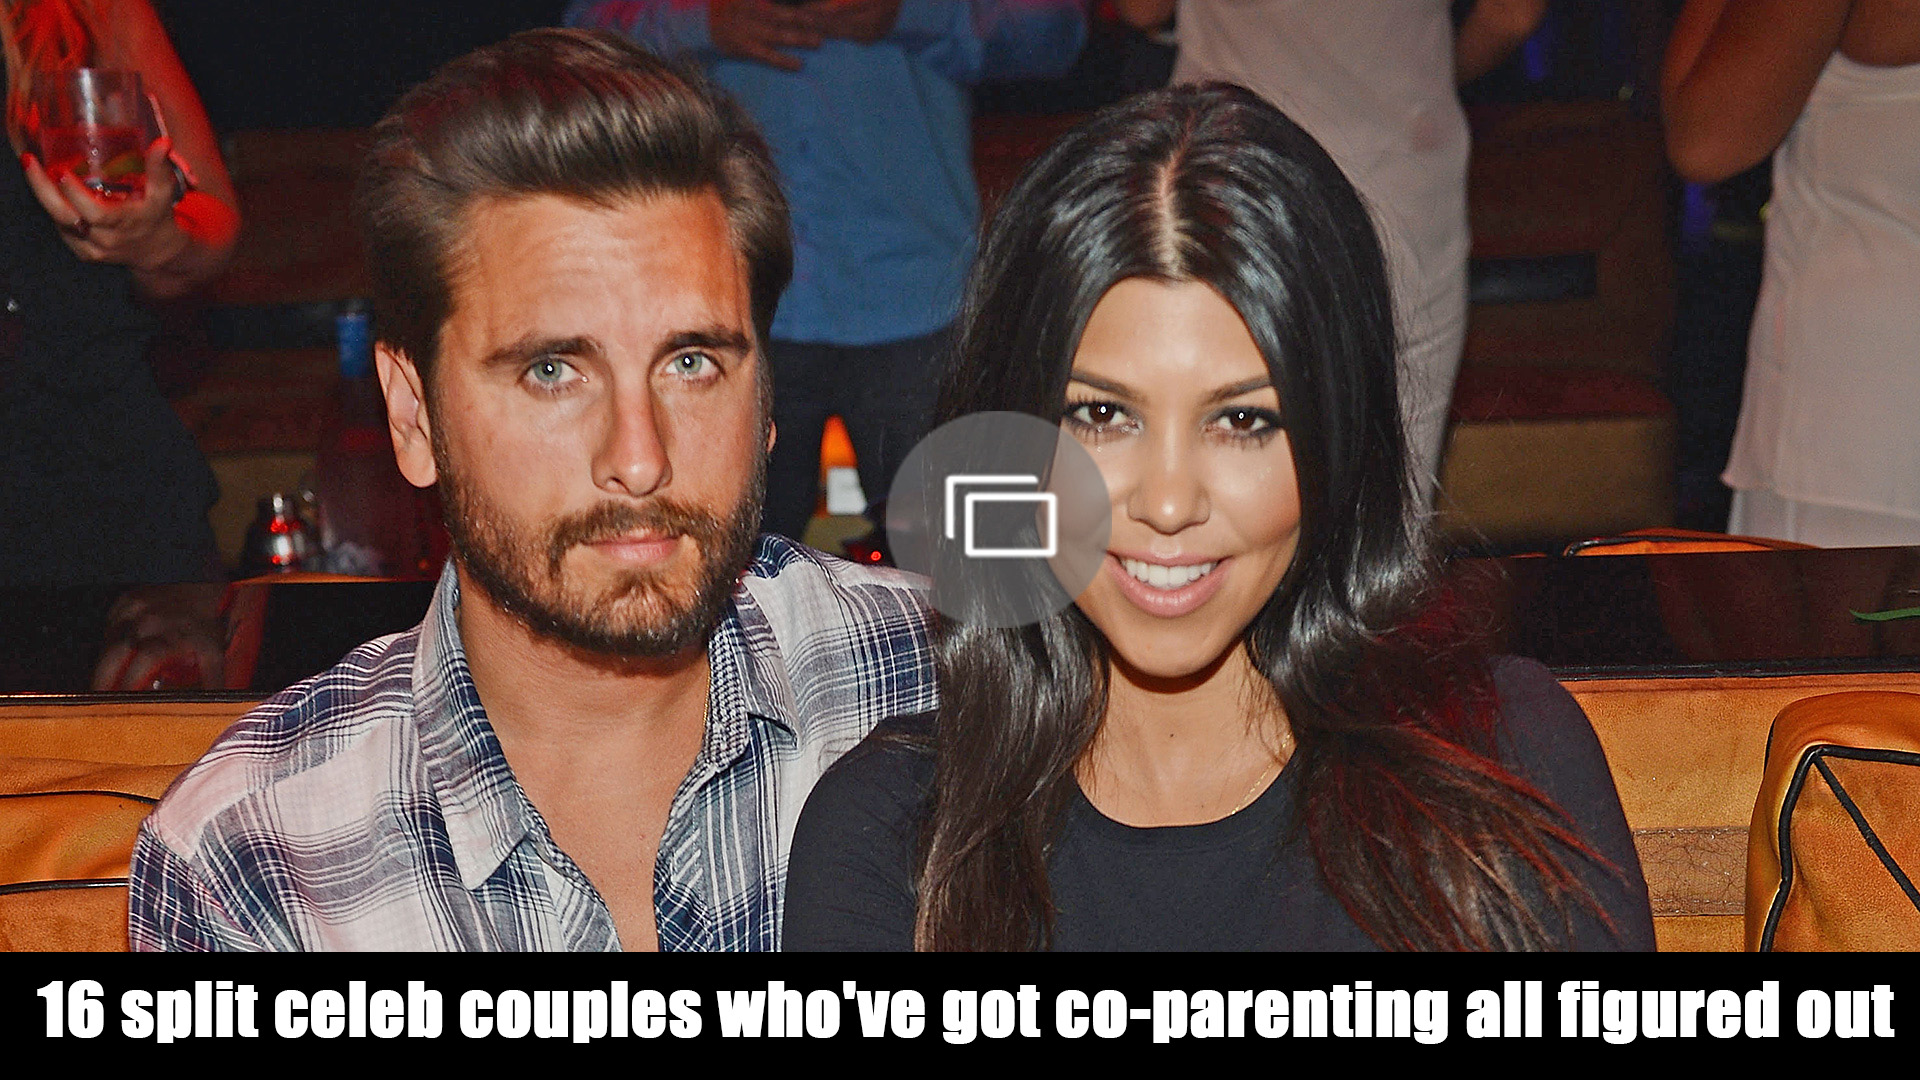 Co-parenting divorced celebs